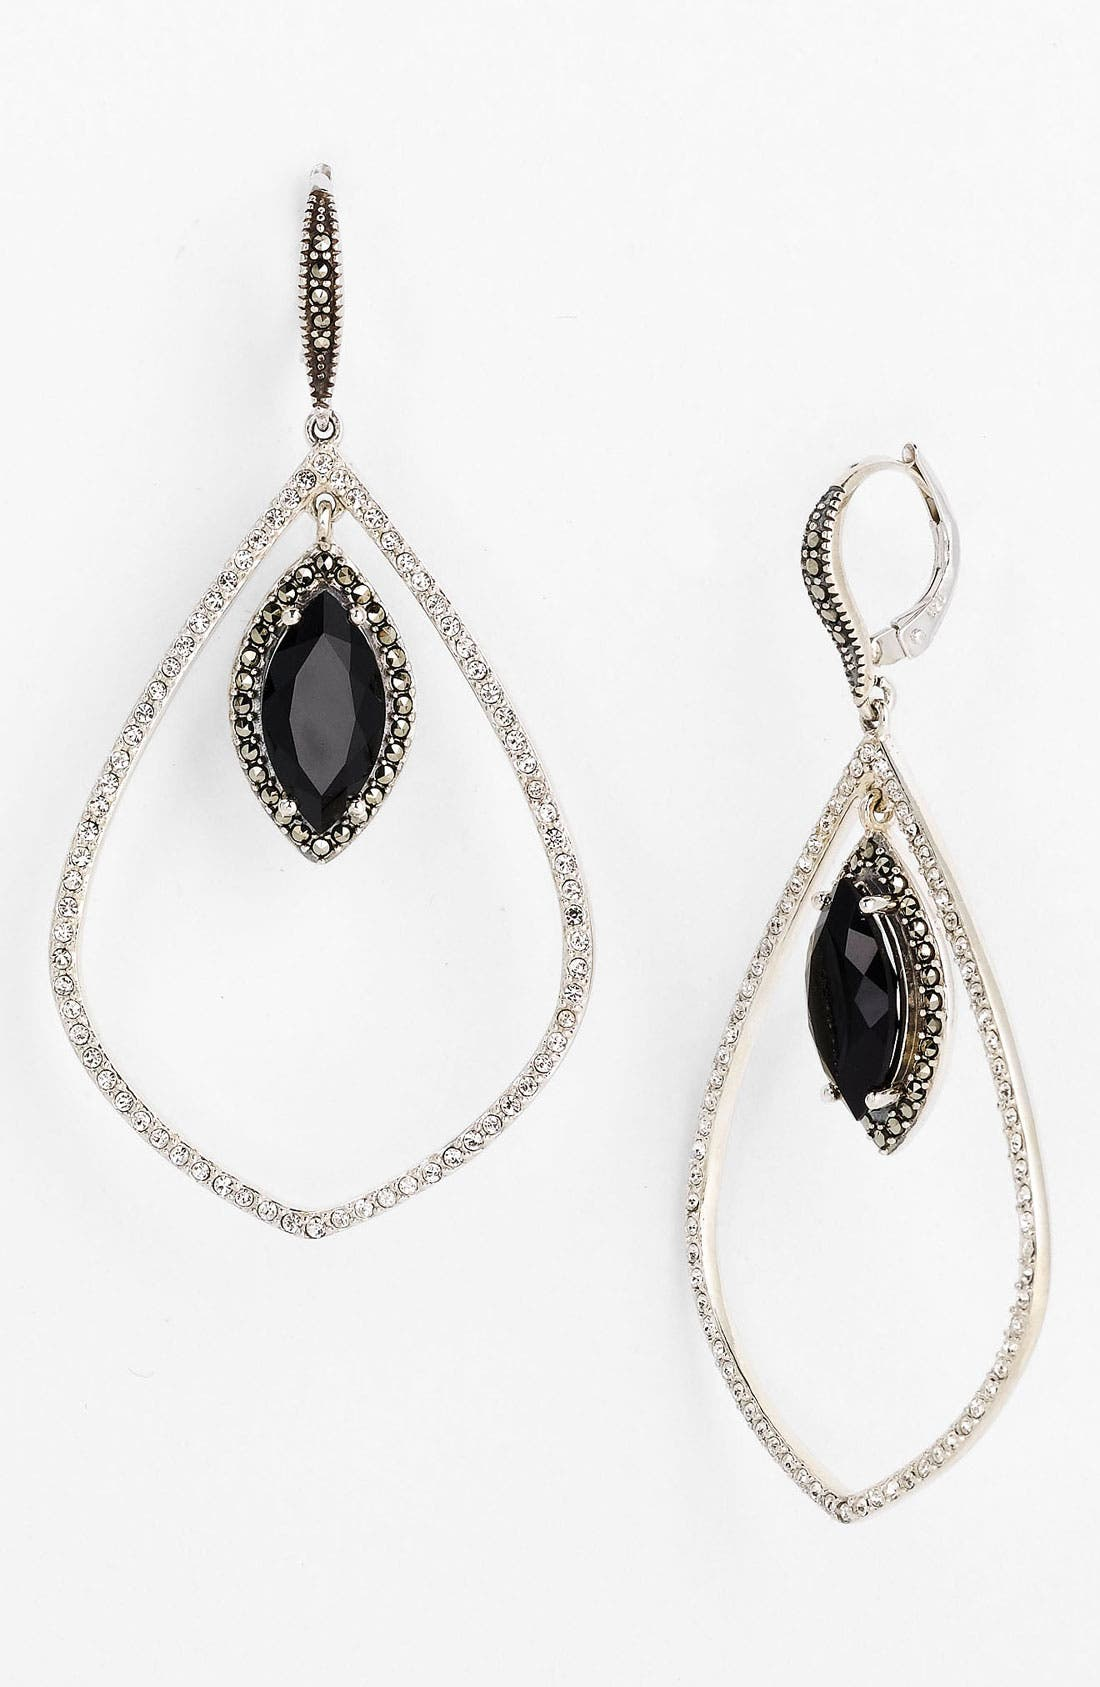 Main Image - Judith Jack 'Hanging Gardens' Drop Earrings